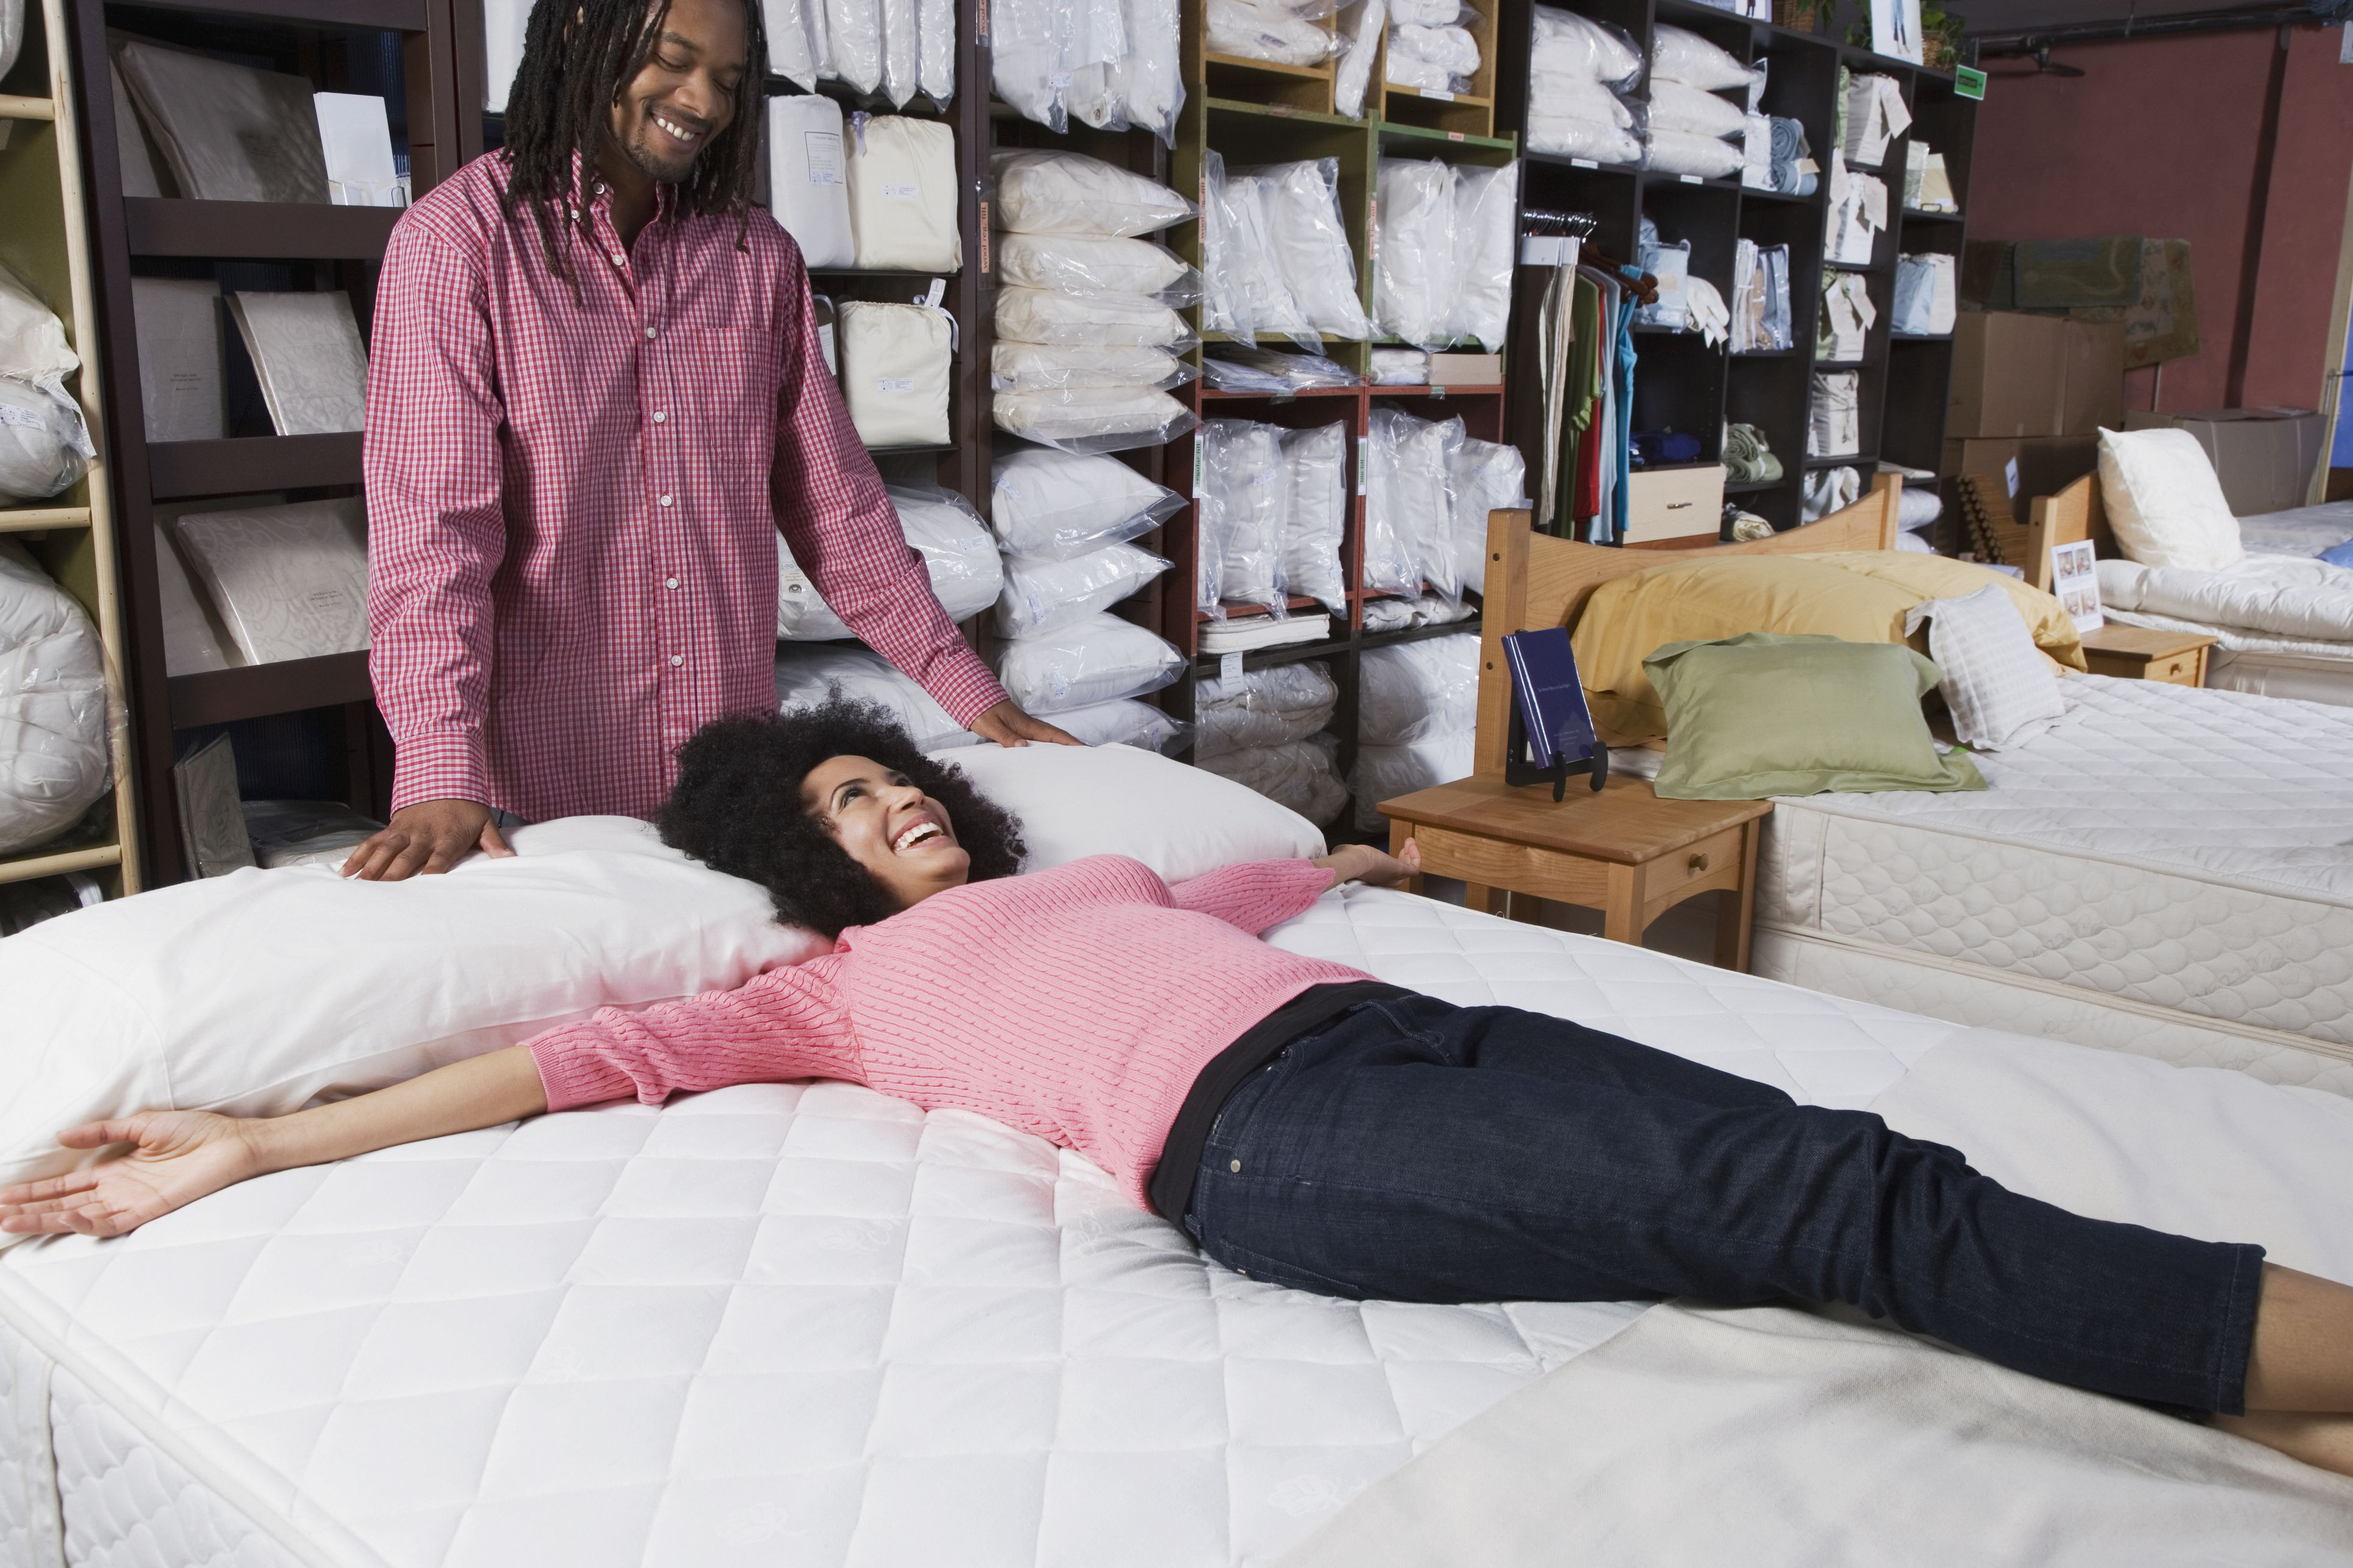 new arrival b4c60 058ca The 10 Best Places to Buy a Mattress in 2019